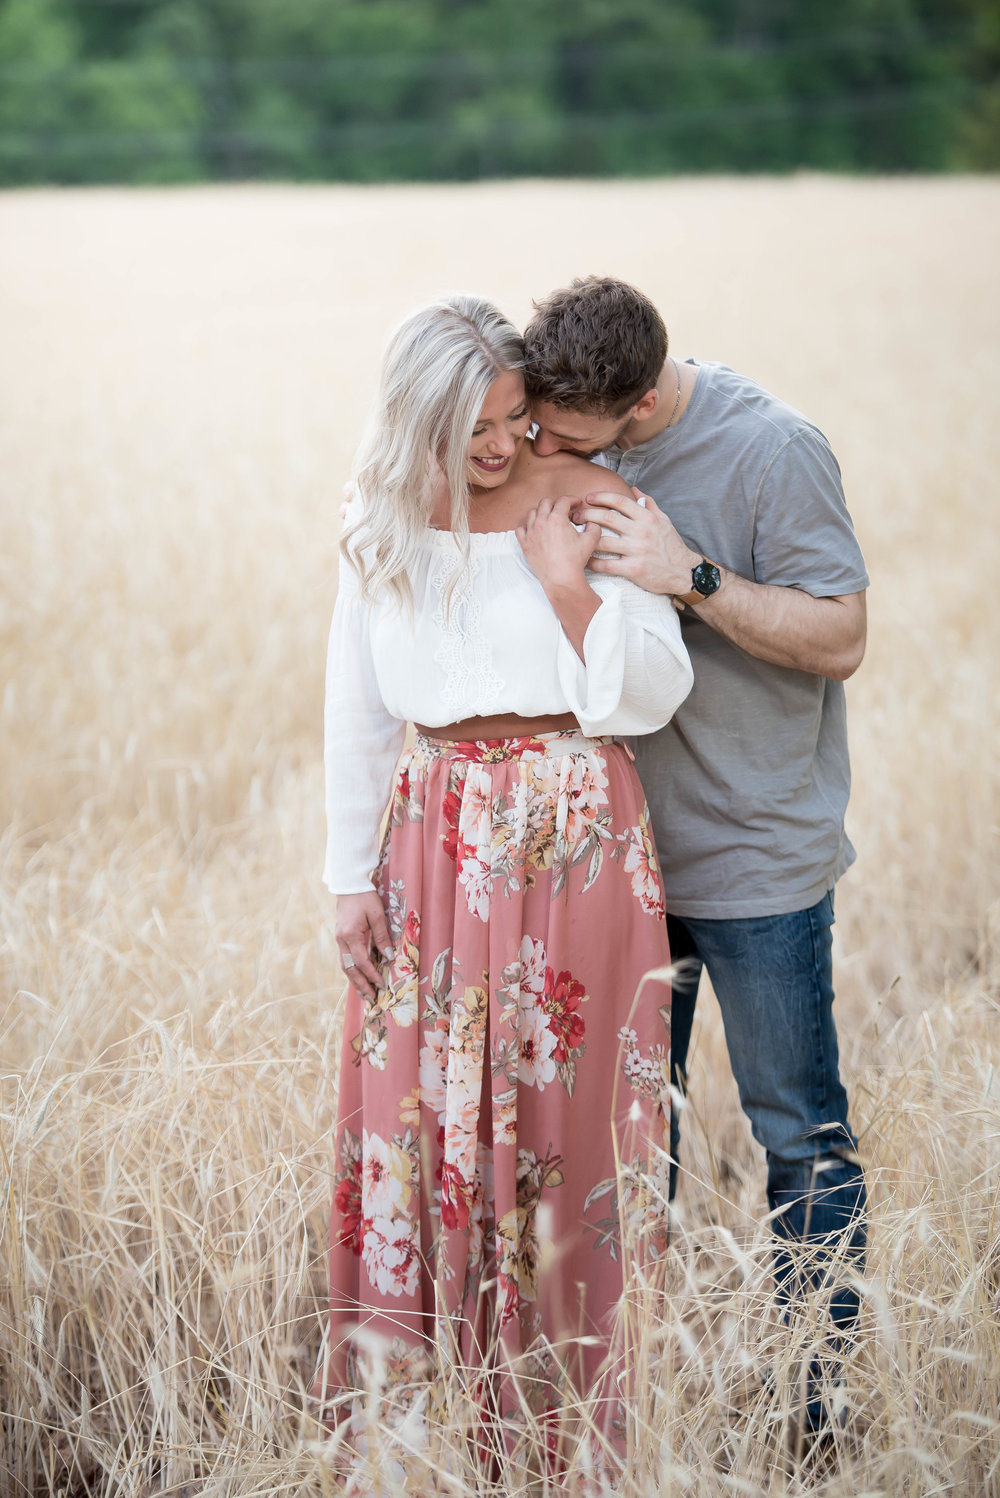 Couple Session - Fitness Couples - Tall Grass Field - Engagement Portrait Ideas - Engagement Session Ideas - Couple Session Ideas - Spring Picture Ideas-17.jpg